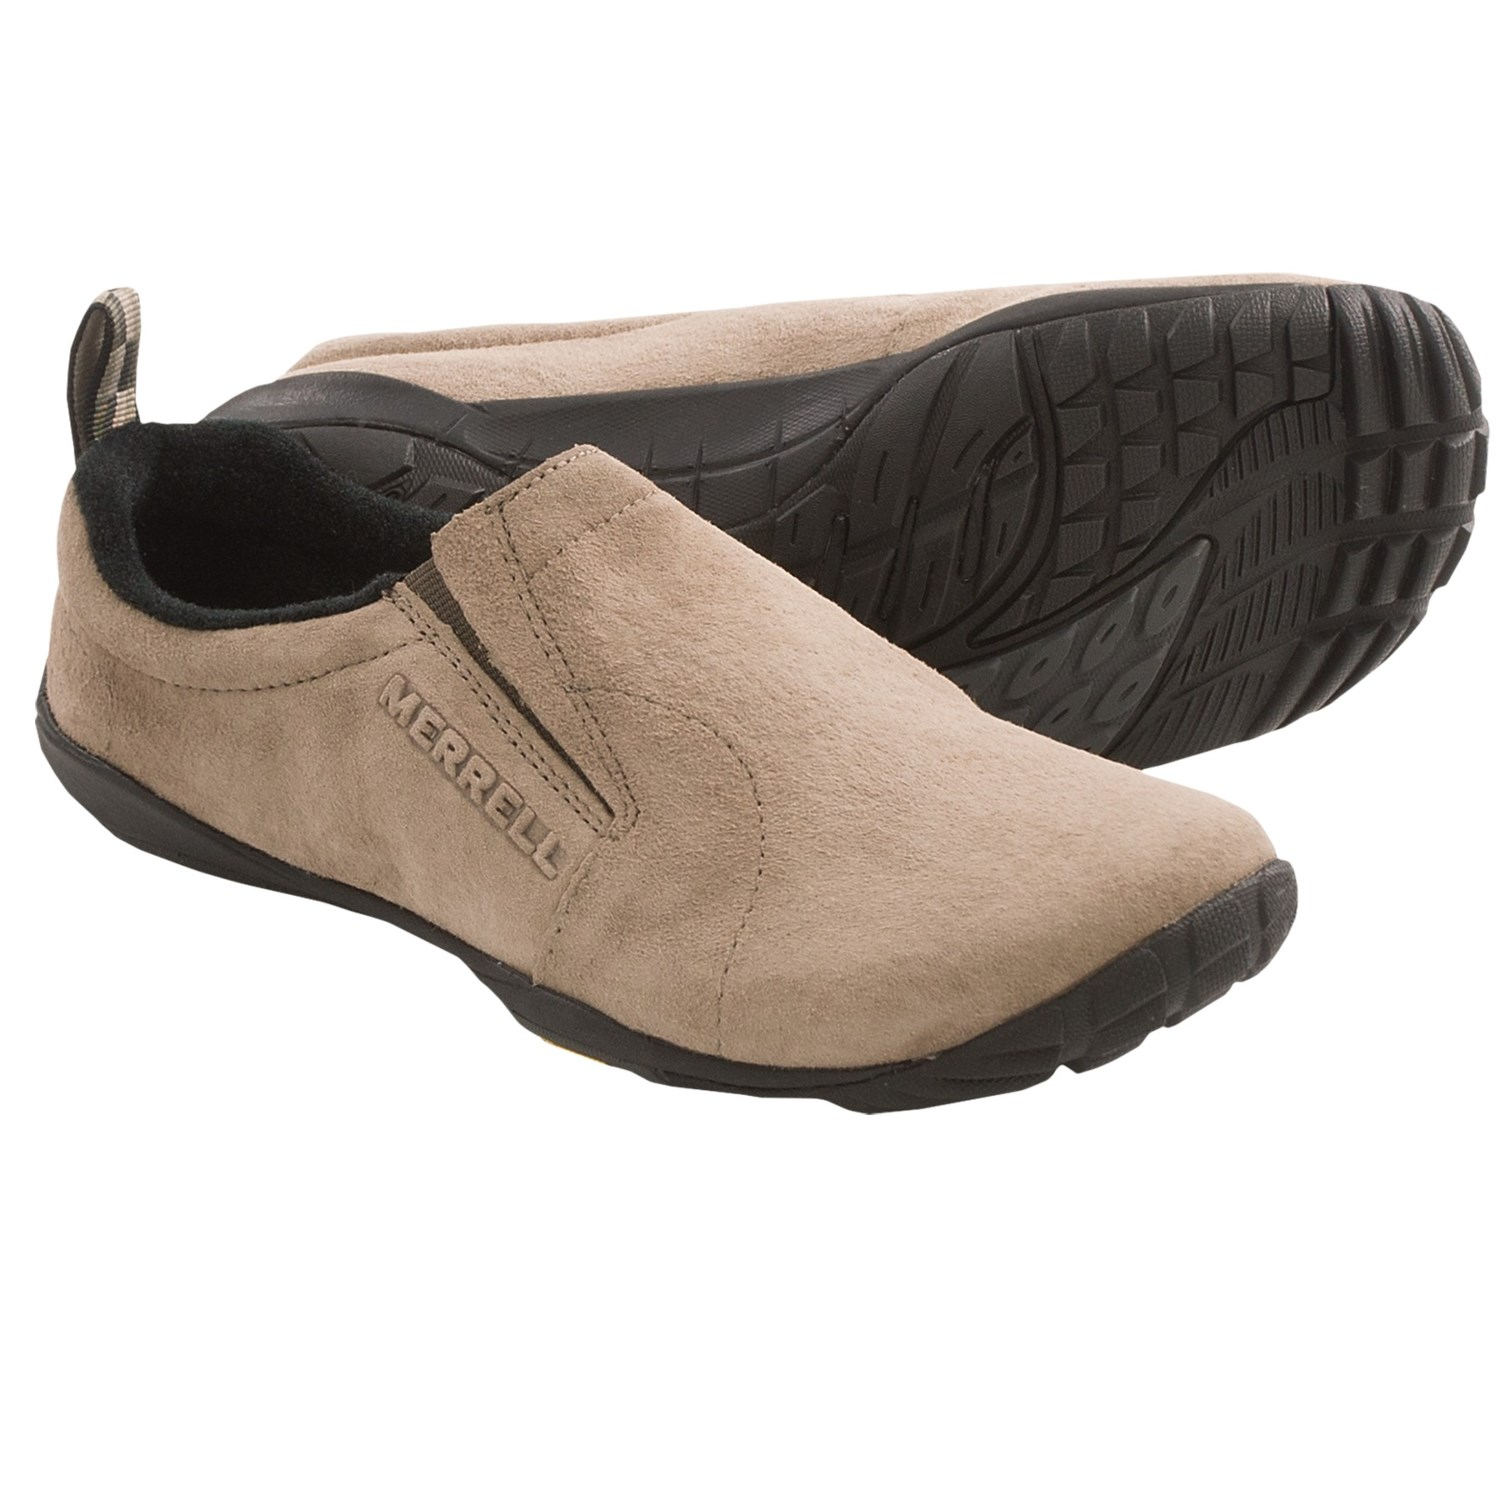 merrell jungle glove shoes minimalist for save 60